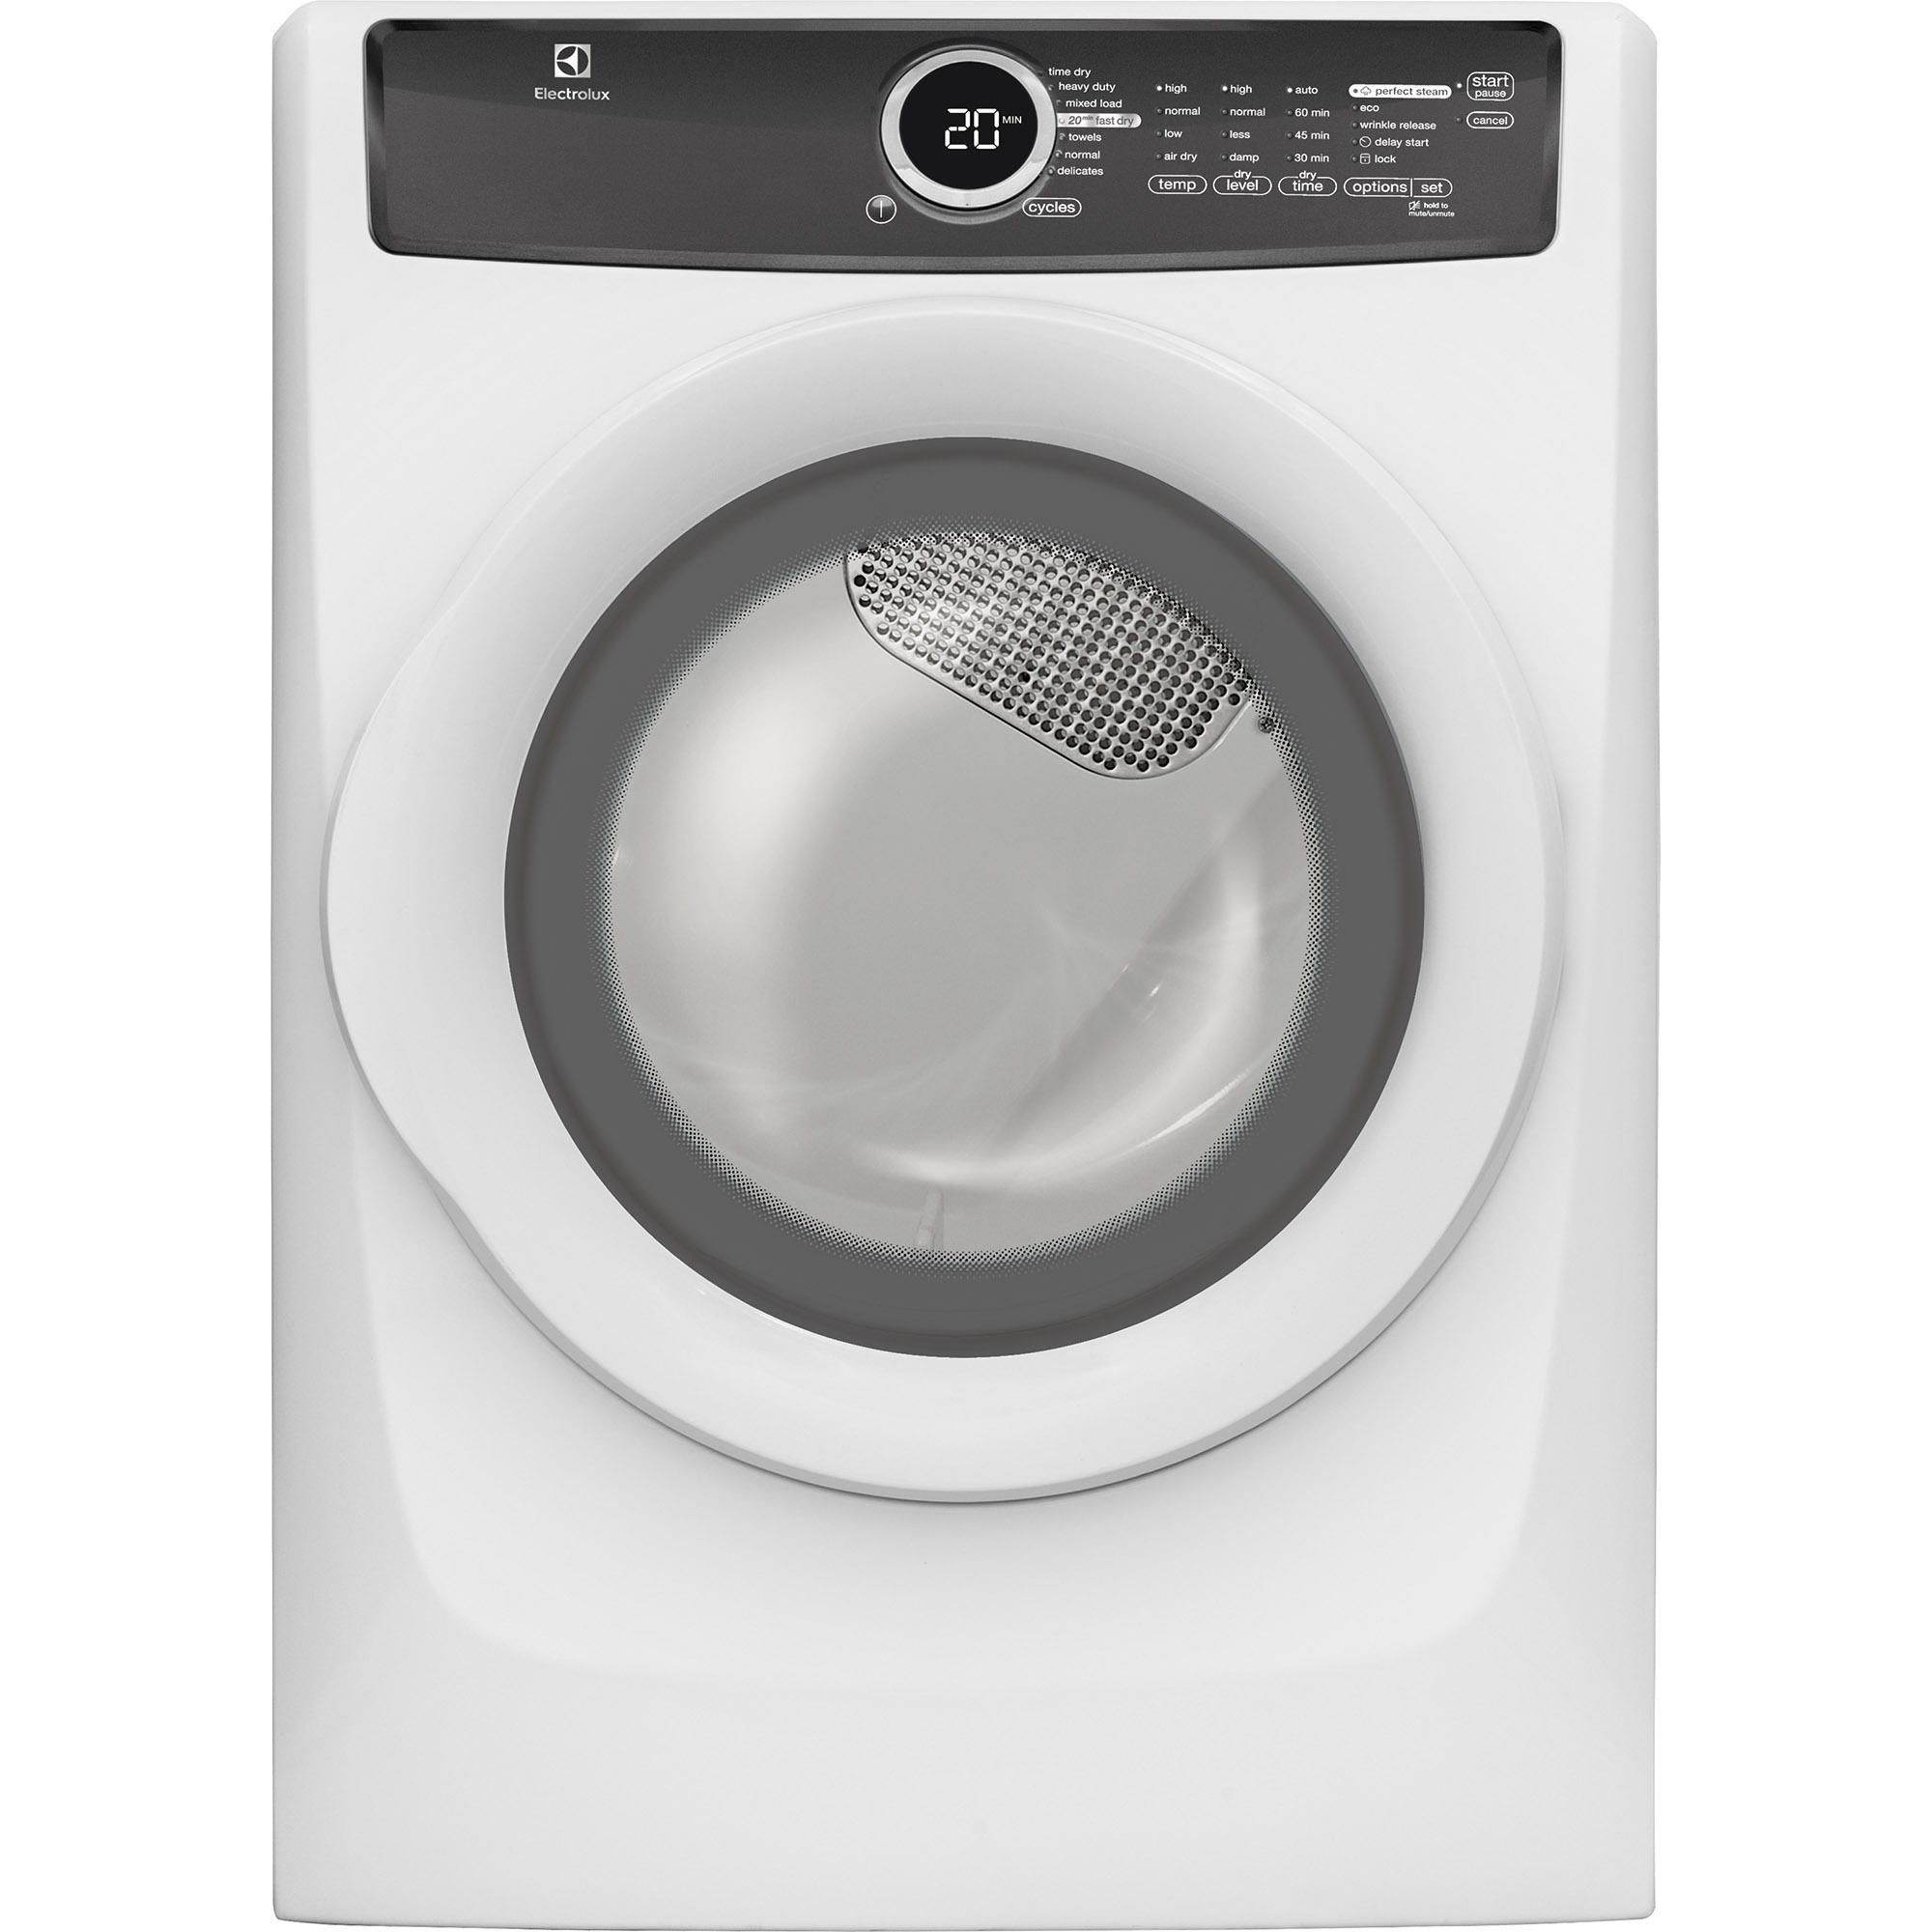 Electrolux EFMG417SIW 8.0 cu. ft. Perfect Steam™ Gas Dryer - White